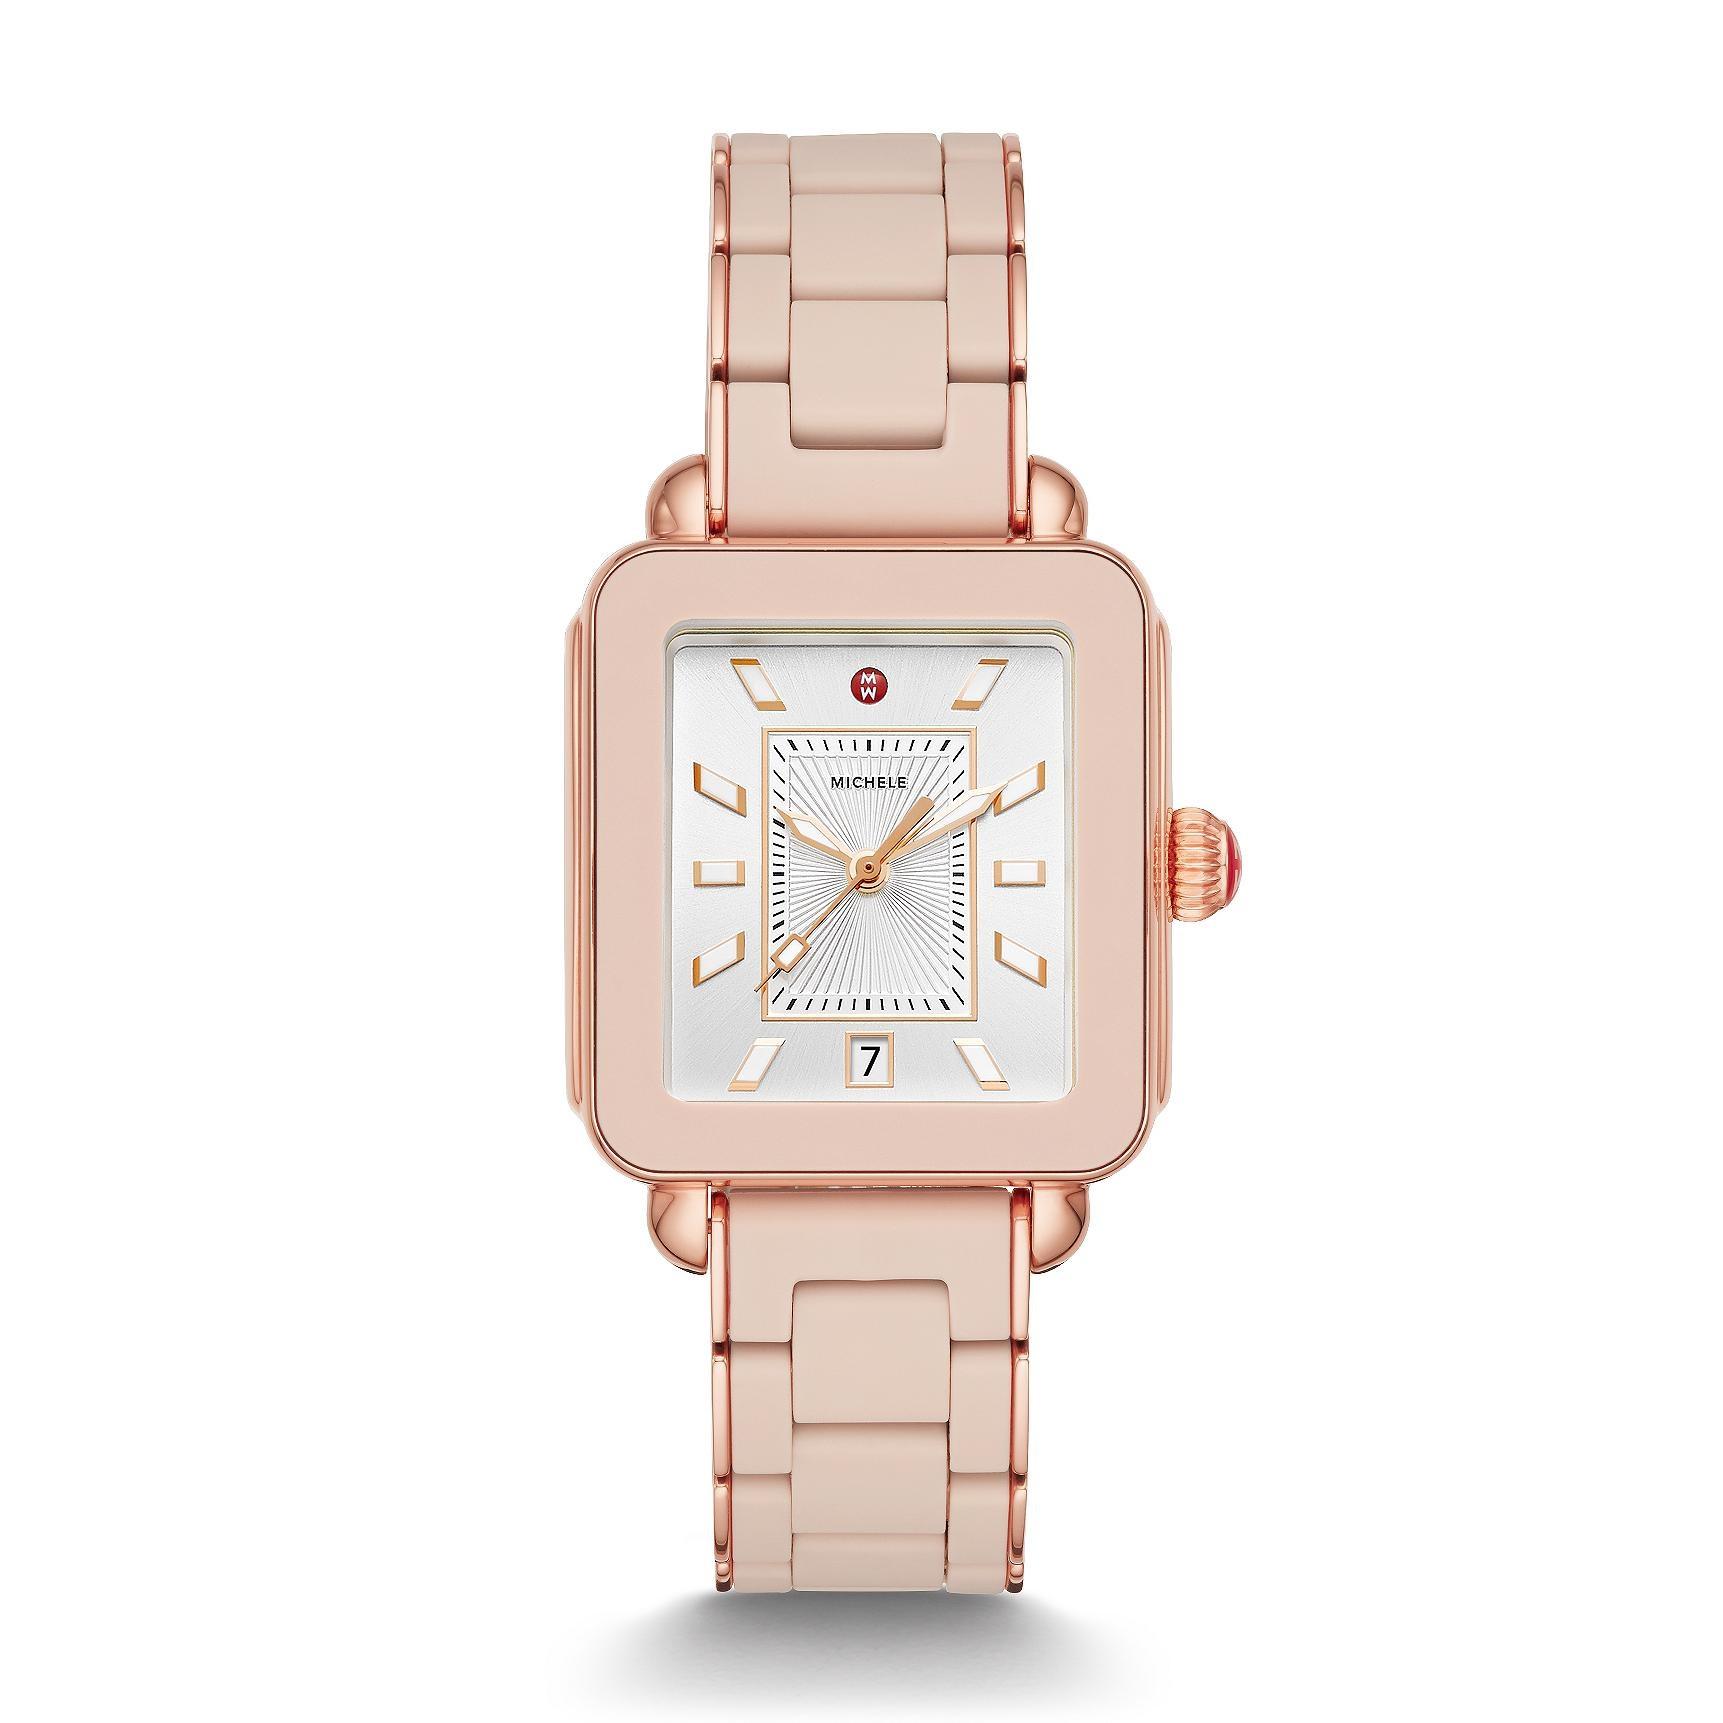 Michele Deco Sport Pink Gold Watch with Rose Rubber Link Strap